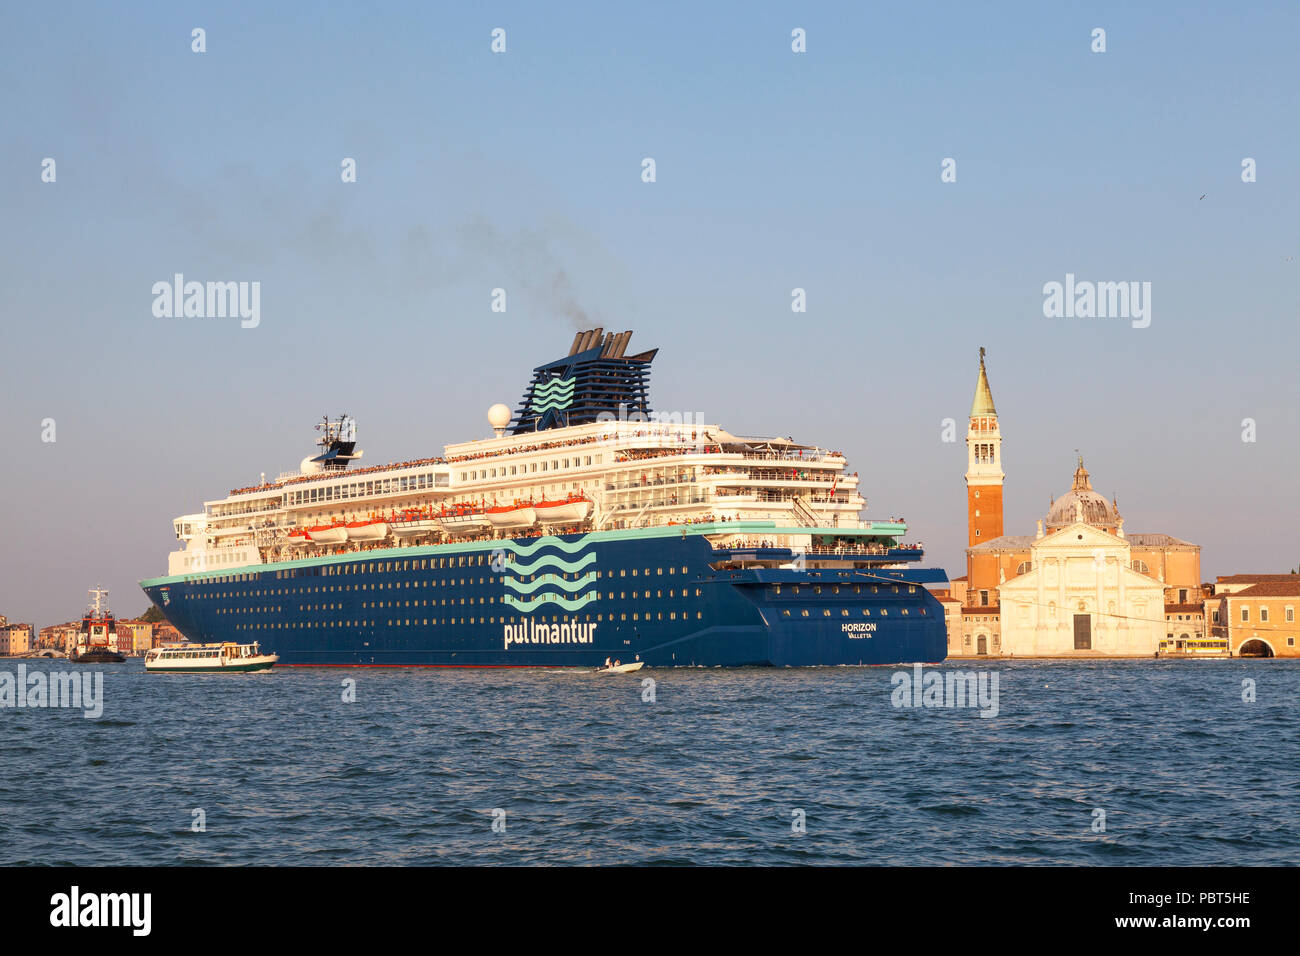 Pullmantur Horizon cruise liner passing  San Giorgio Maggiore, Giudecca Canal, St Marks Basin,  under tow, Venice, Veneto, Italy on departure at sunse - Stock Image